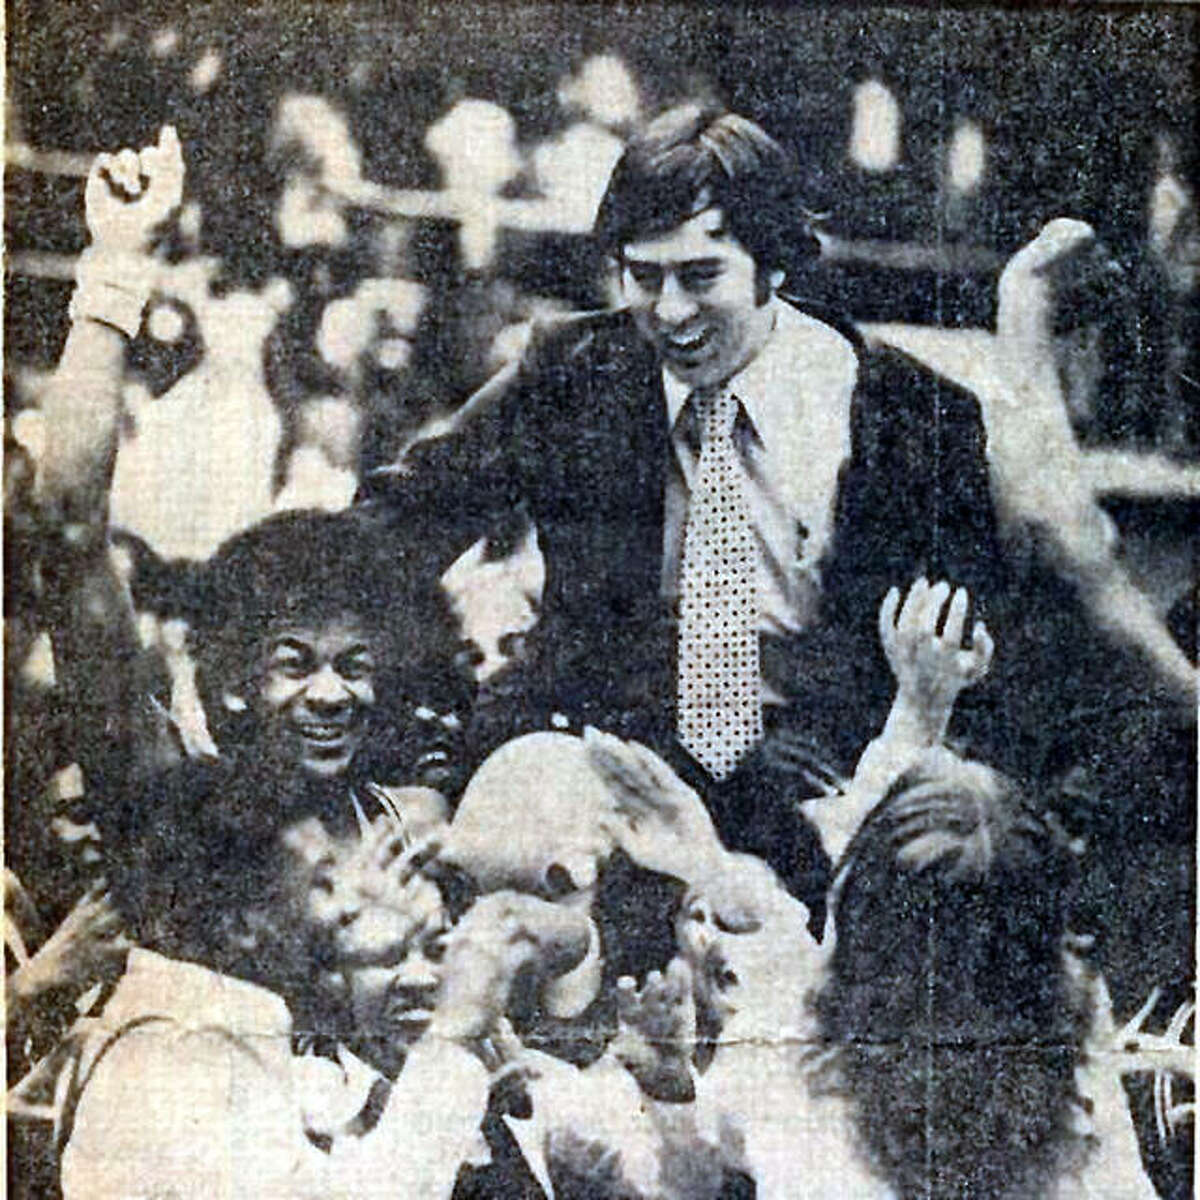 Coach Larry Graham is carried off the court by Madison Trojans team and fans after winning the Vandalia Class A Sectional championship in 1978 on their way to the Class A state championship. Graham, who went on to lead Madison to another state title before moving to SIUE, died a year ago at the age of 77. A Celebration of Life golf outing in his memory is set for Oct. 8 at Arlington Greens Golf Course near Granite City.